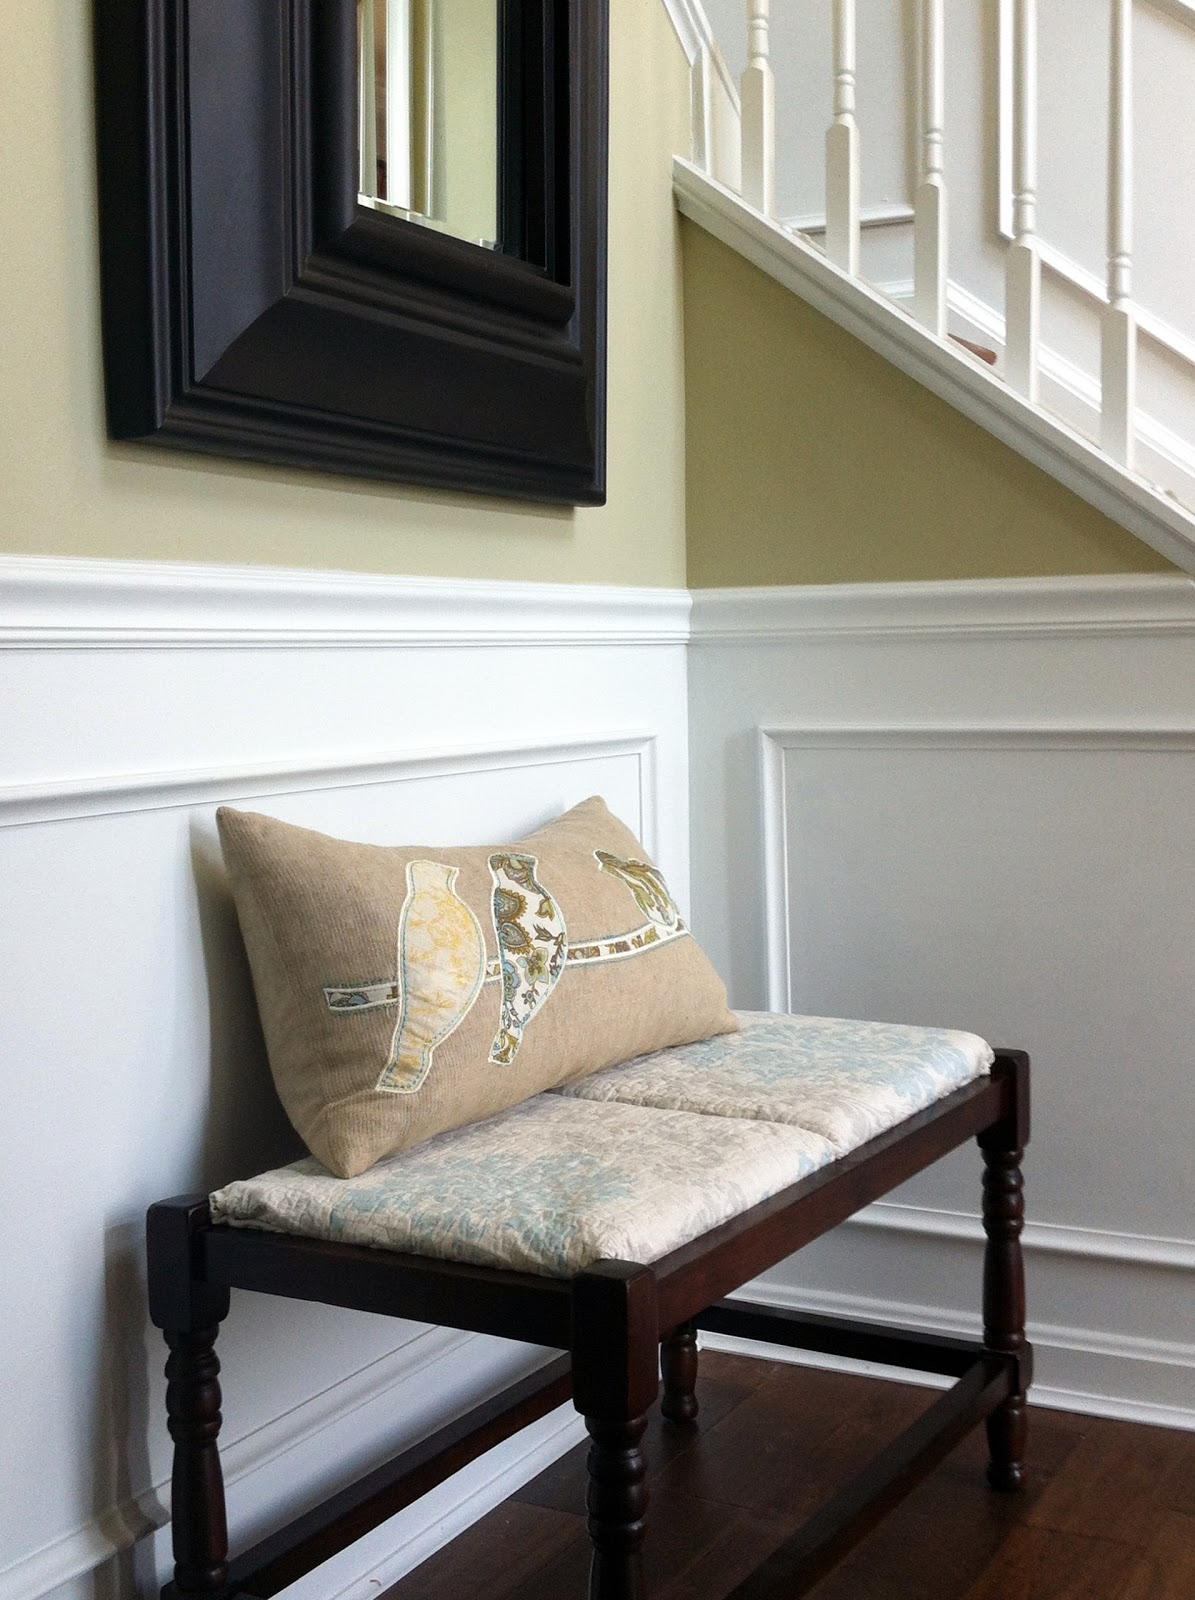 Foyer Seating Bench : Loveyourroom quickly change that rush bench seat diy idea